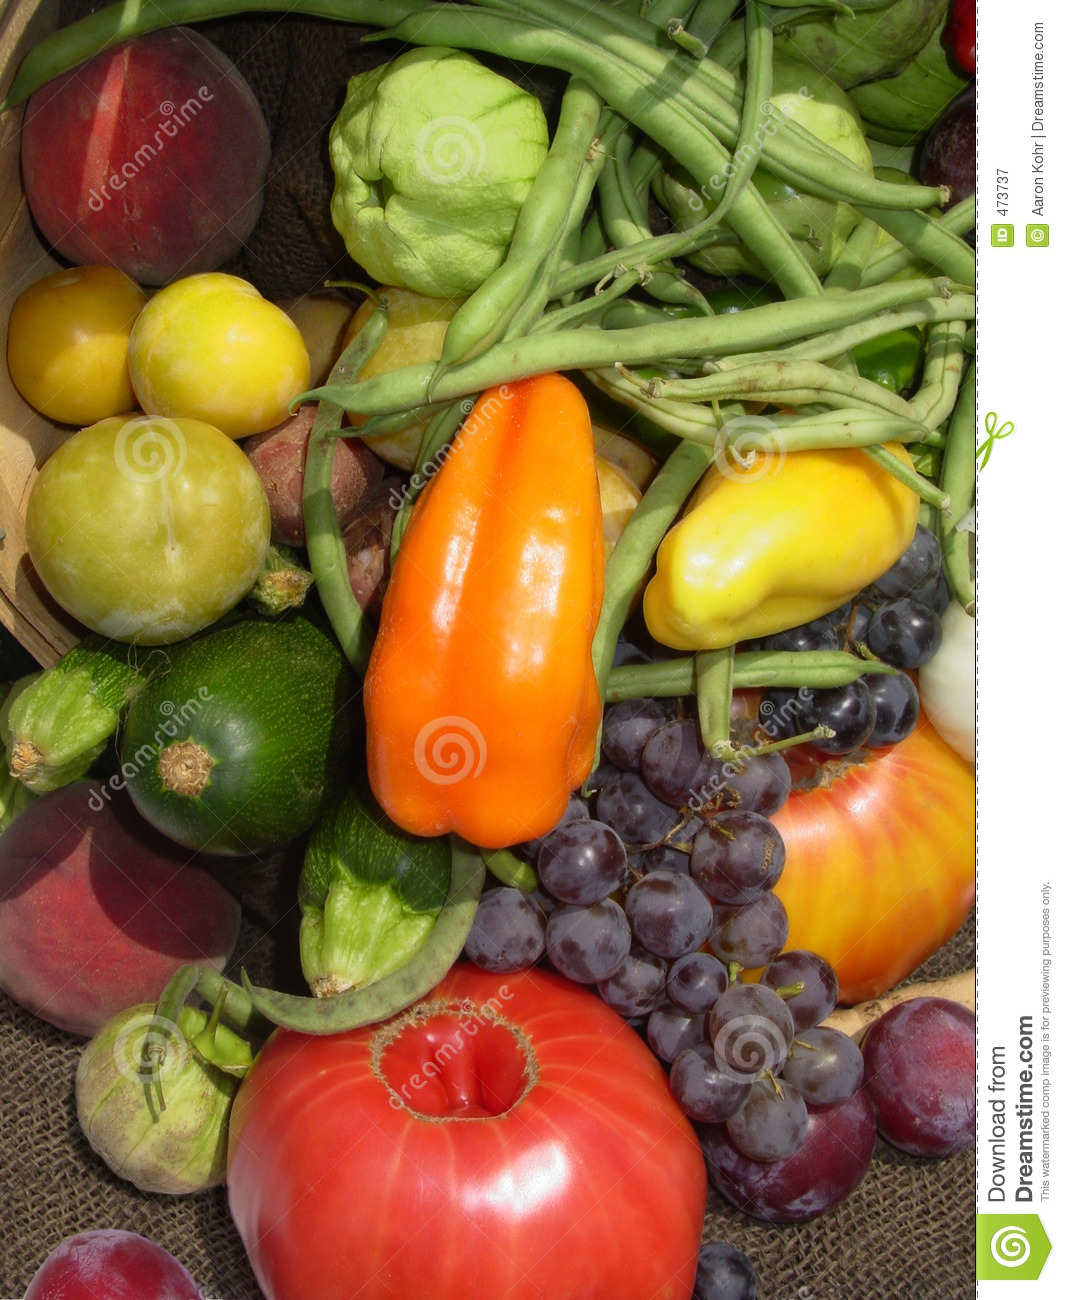 Download Bounty of Vegetables stock image. Image of health, food - 473737